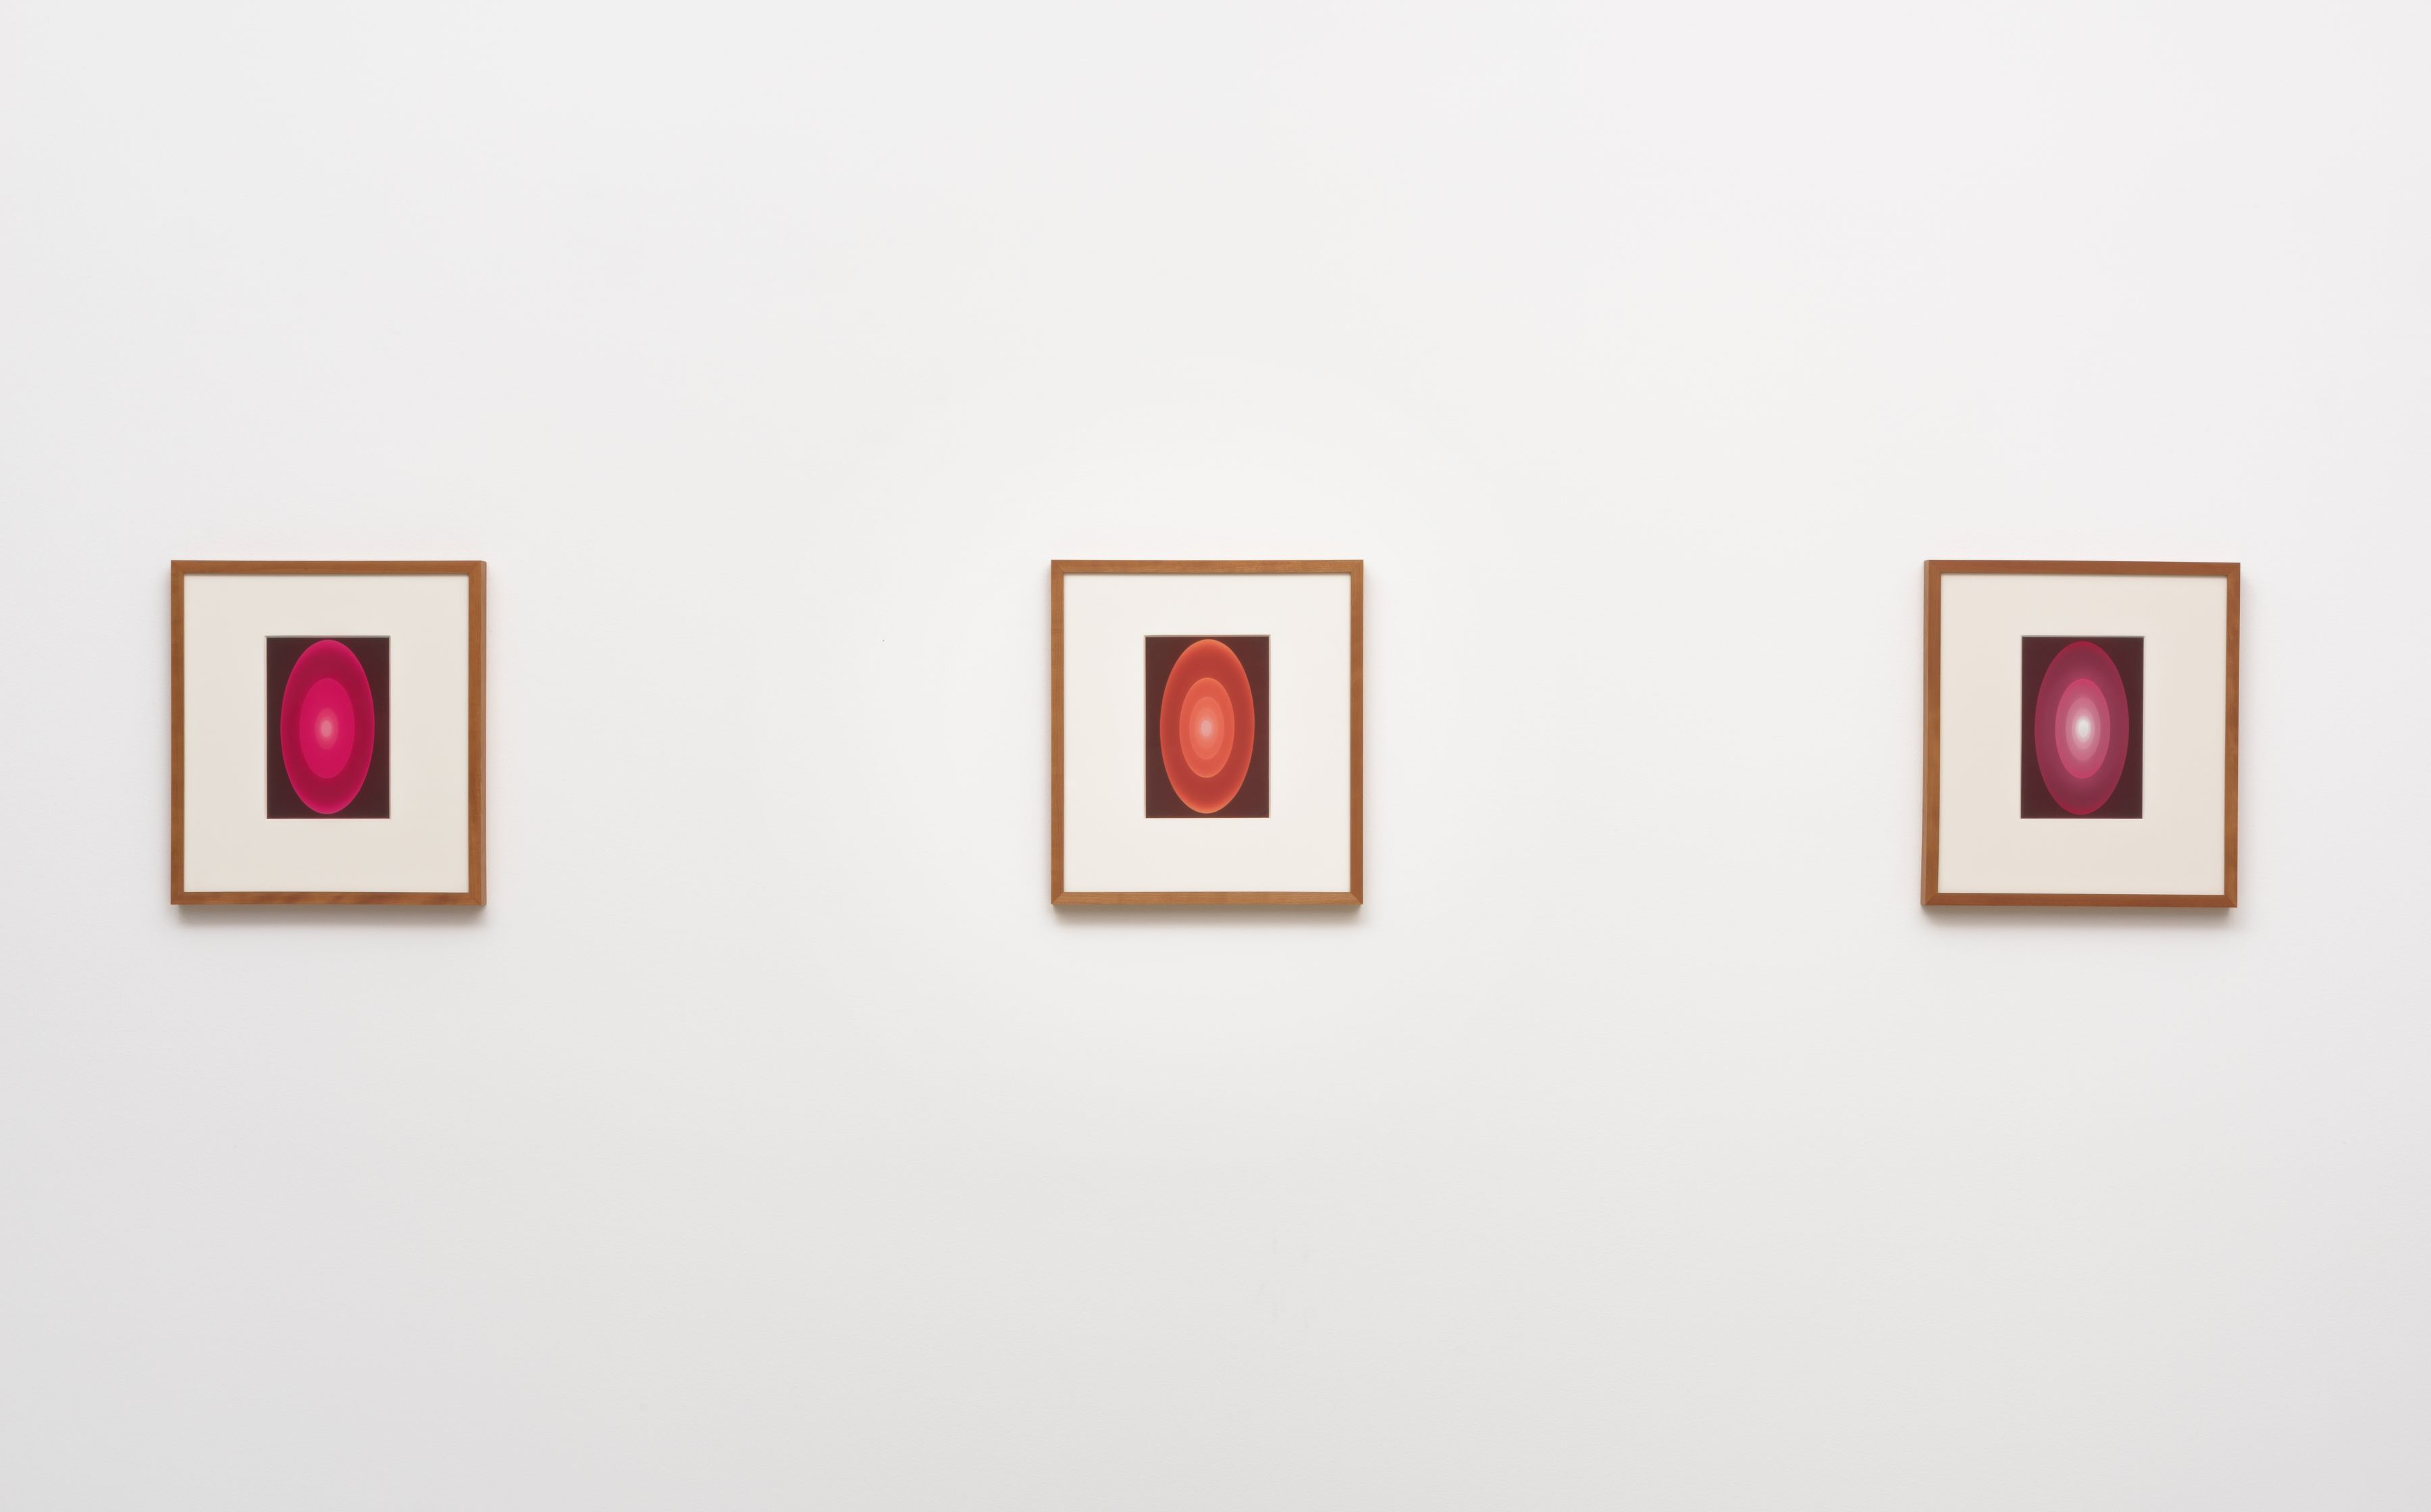 James Turrell, From the Guggenheim, Set 1, Reds, Large Vertical, 2015